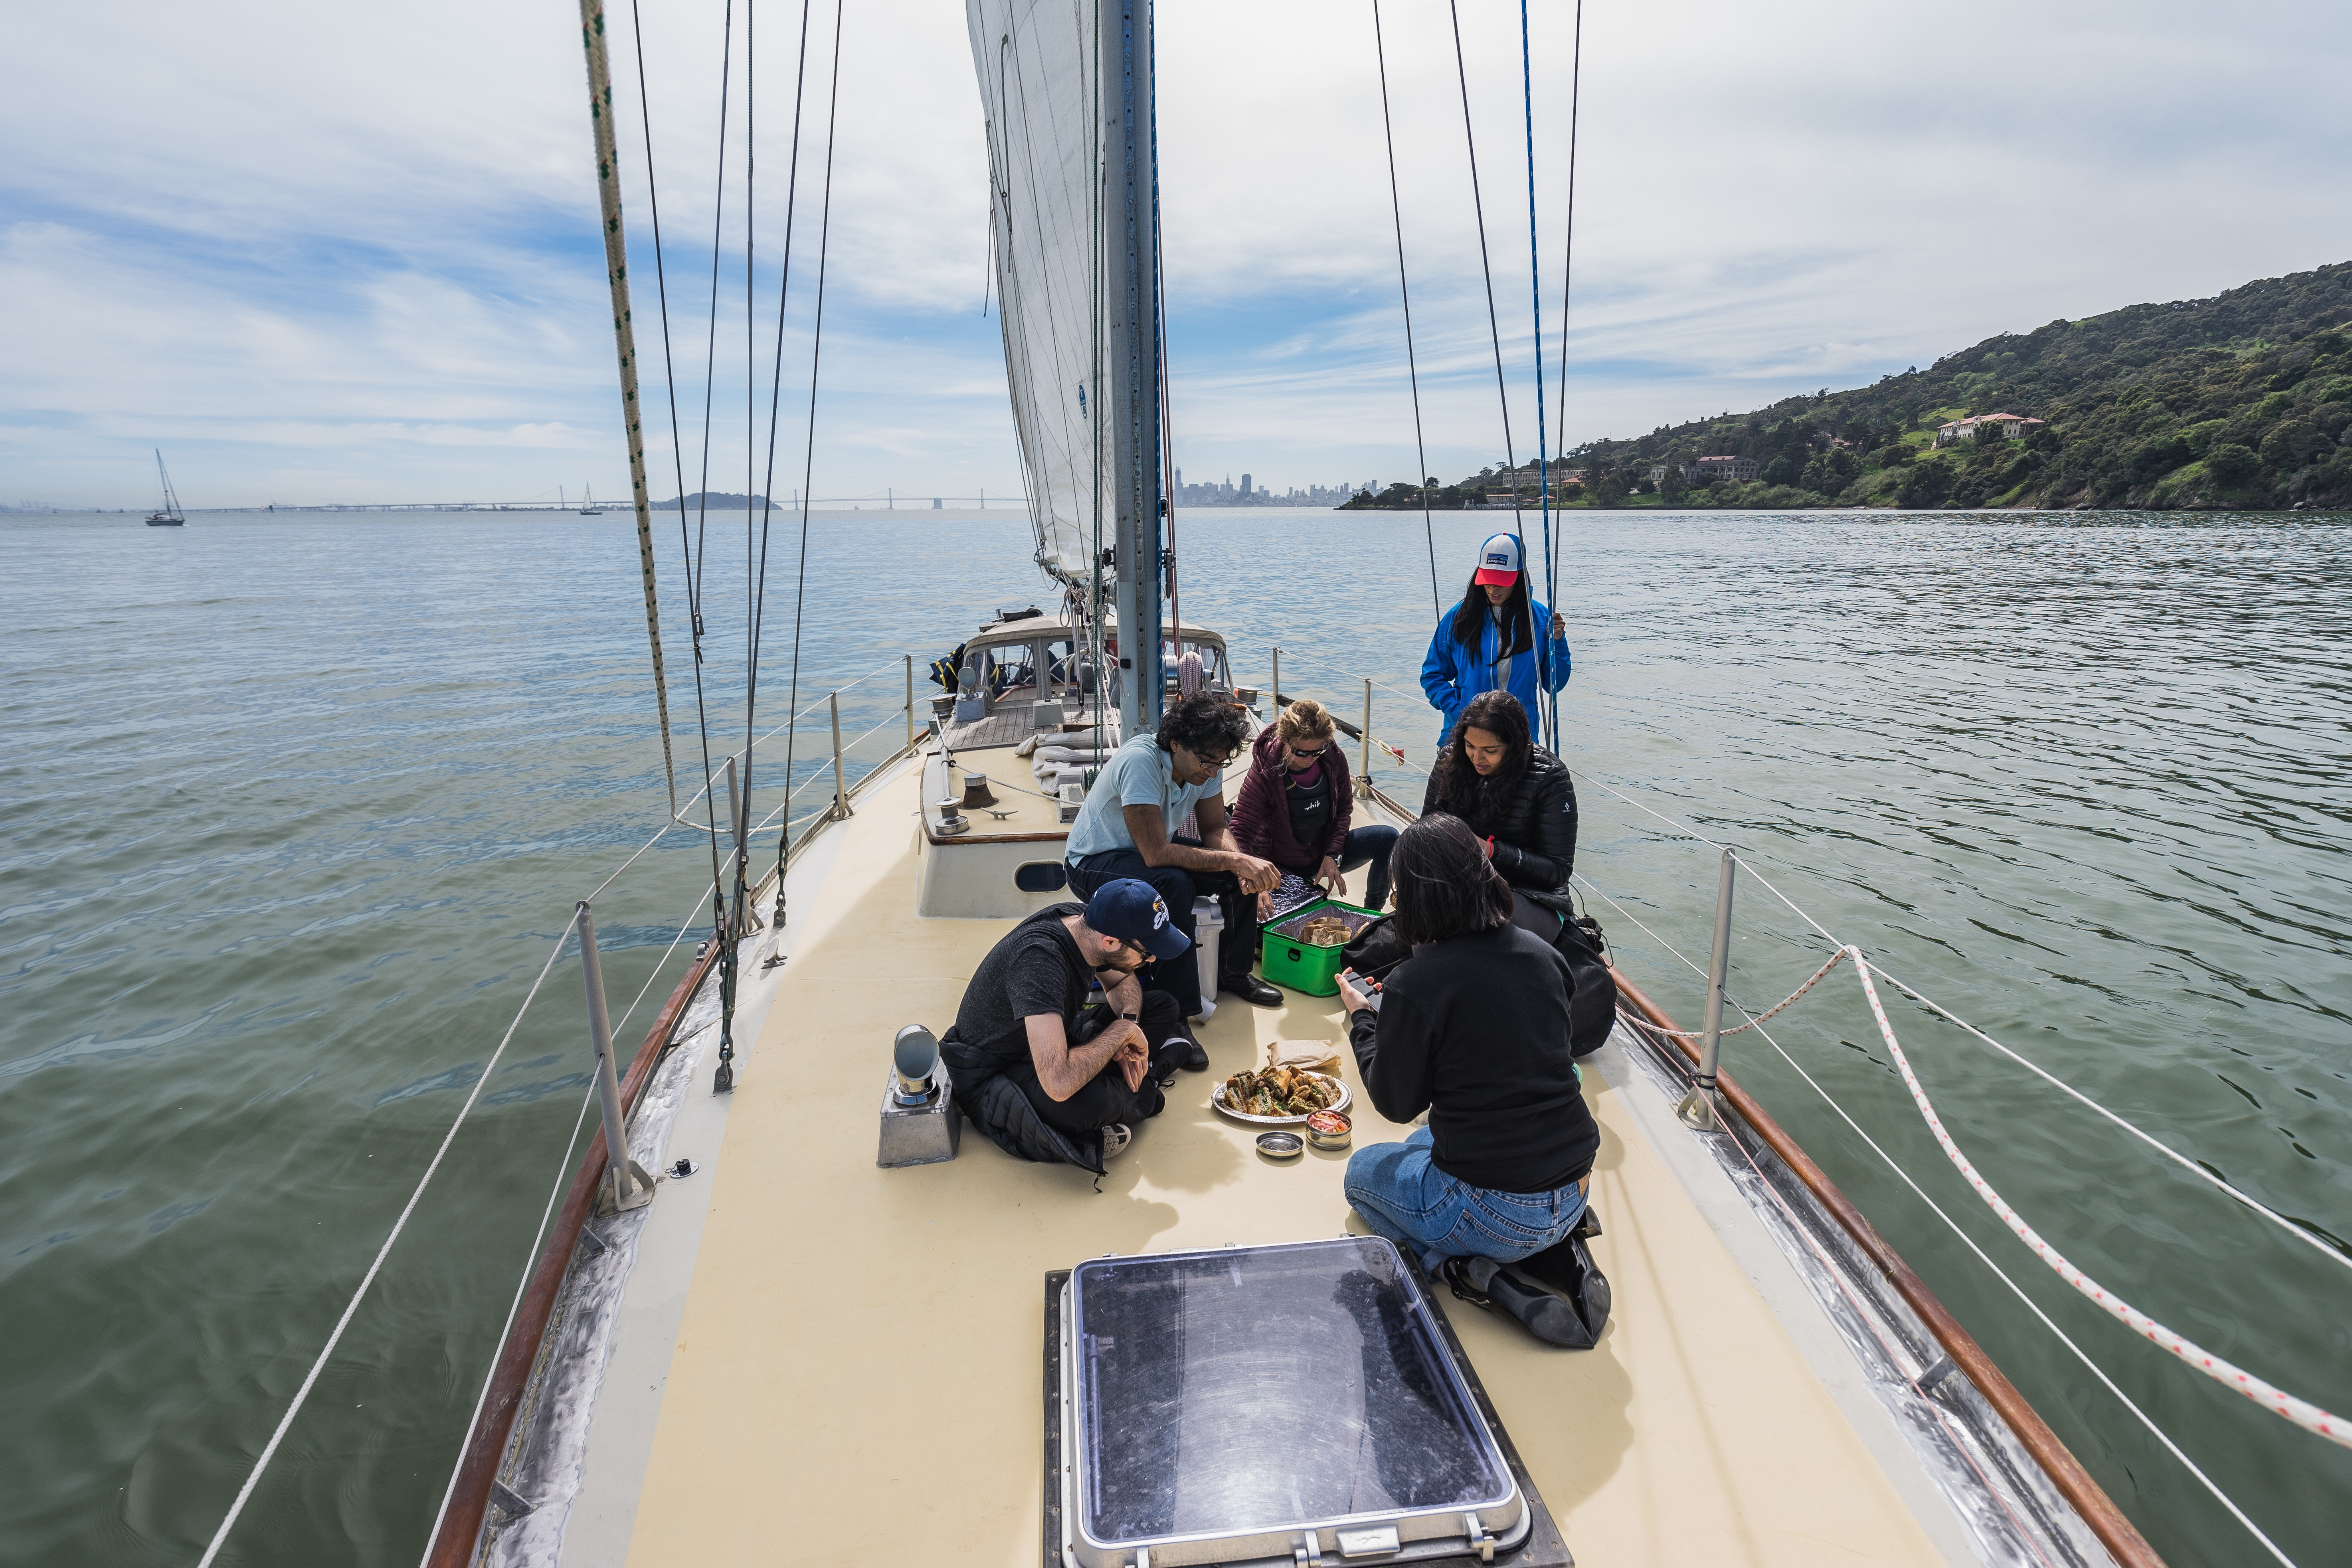 Amazing Experiences with AirBNB – Fine Day For Sailing on